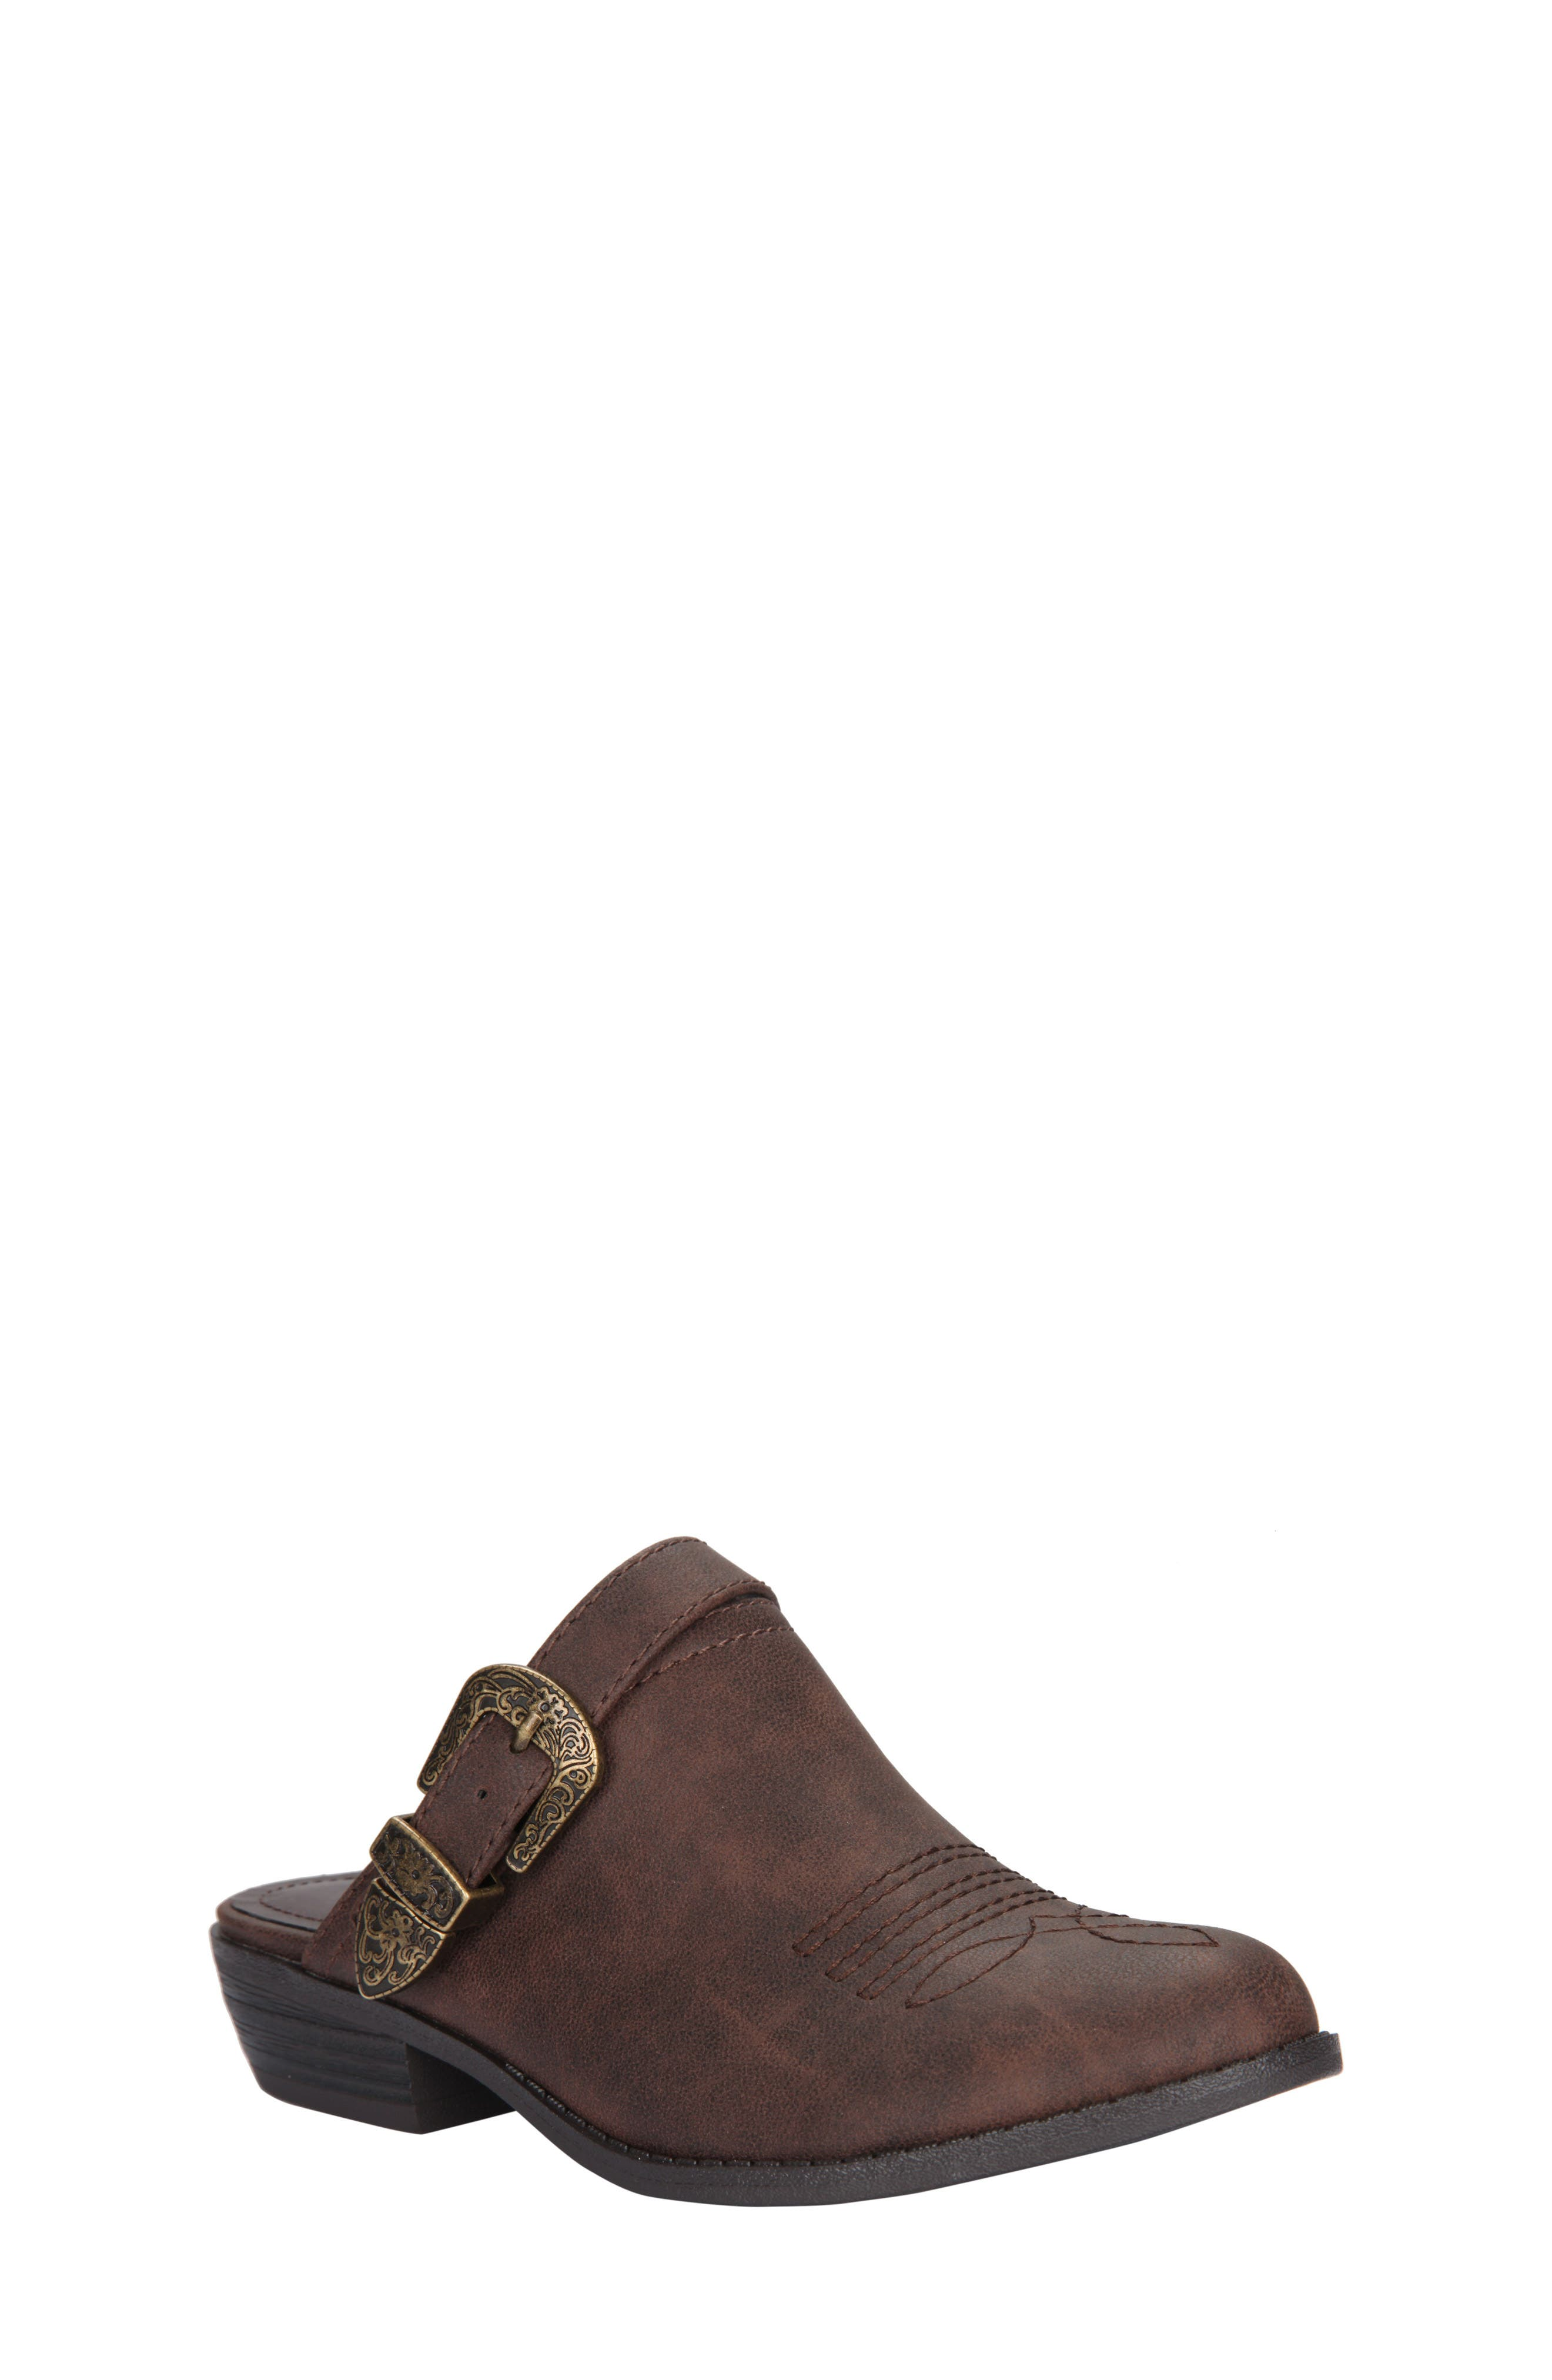 Deb Swivel Strap Clog,                         Main,                         color, Brown Faux Leather